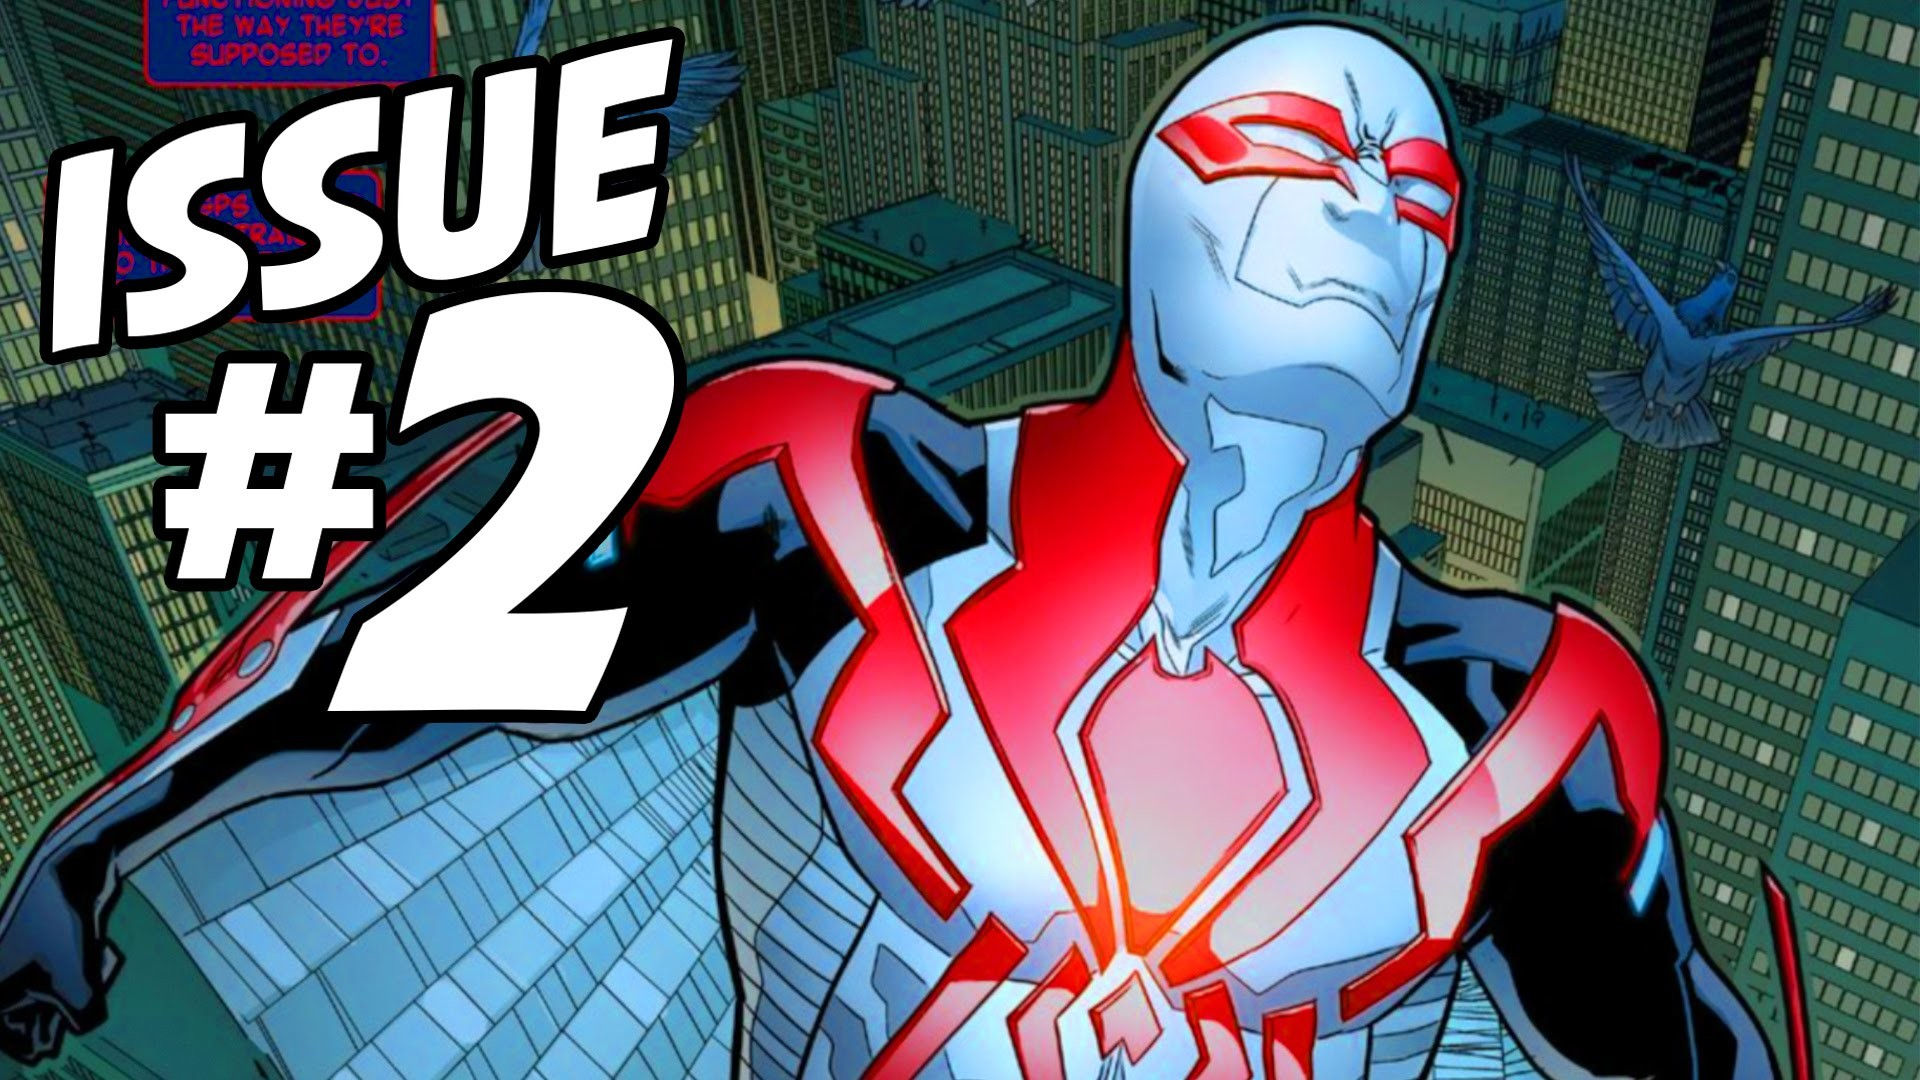 Spider-Man 2099 (All-New All-Different) Issue #2 Full Comic Review! (2015)  – YouTube